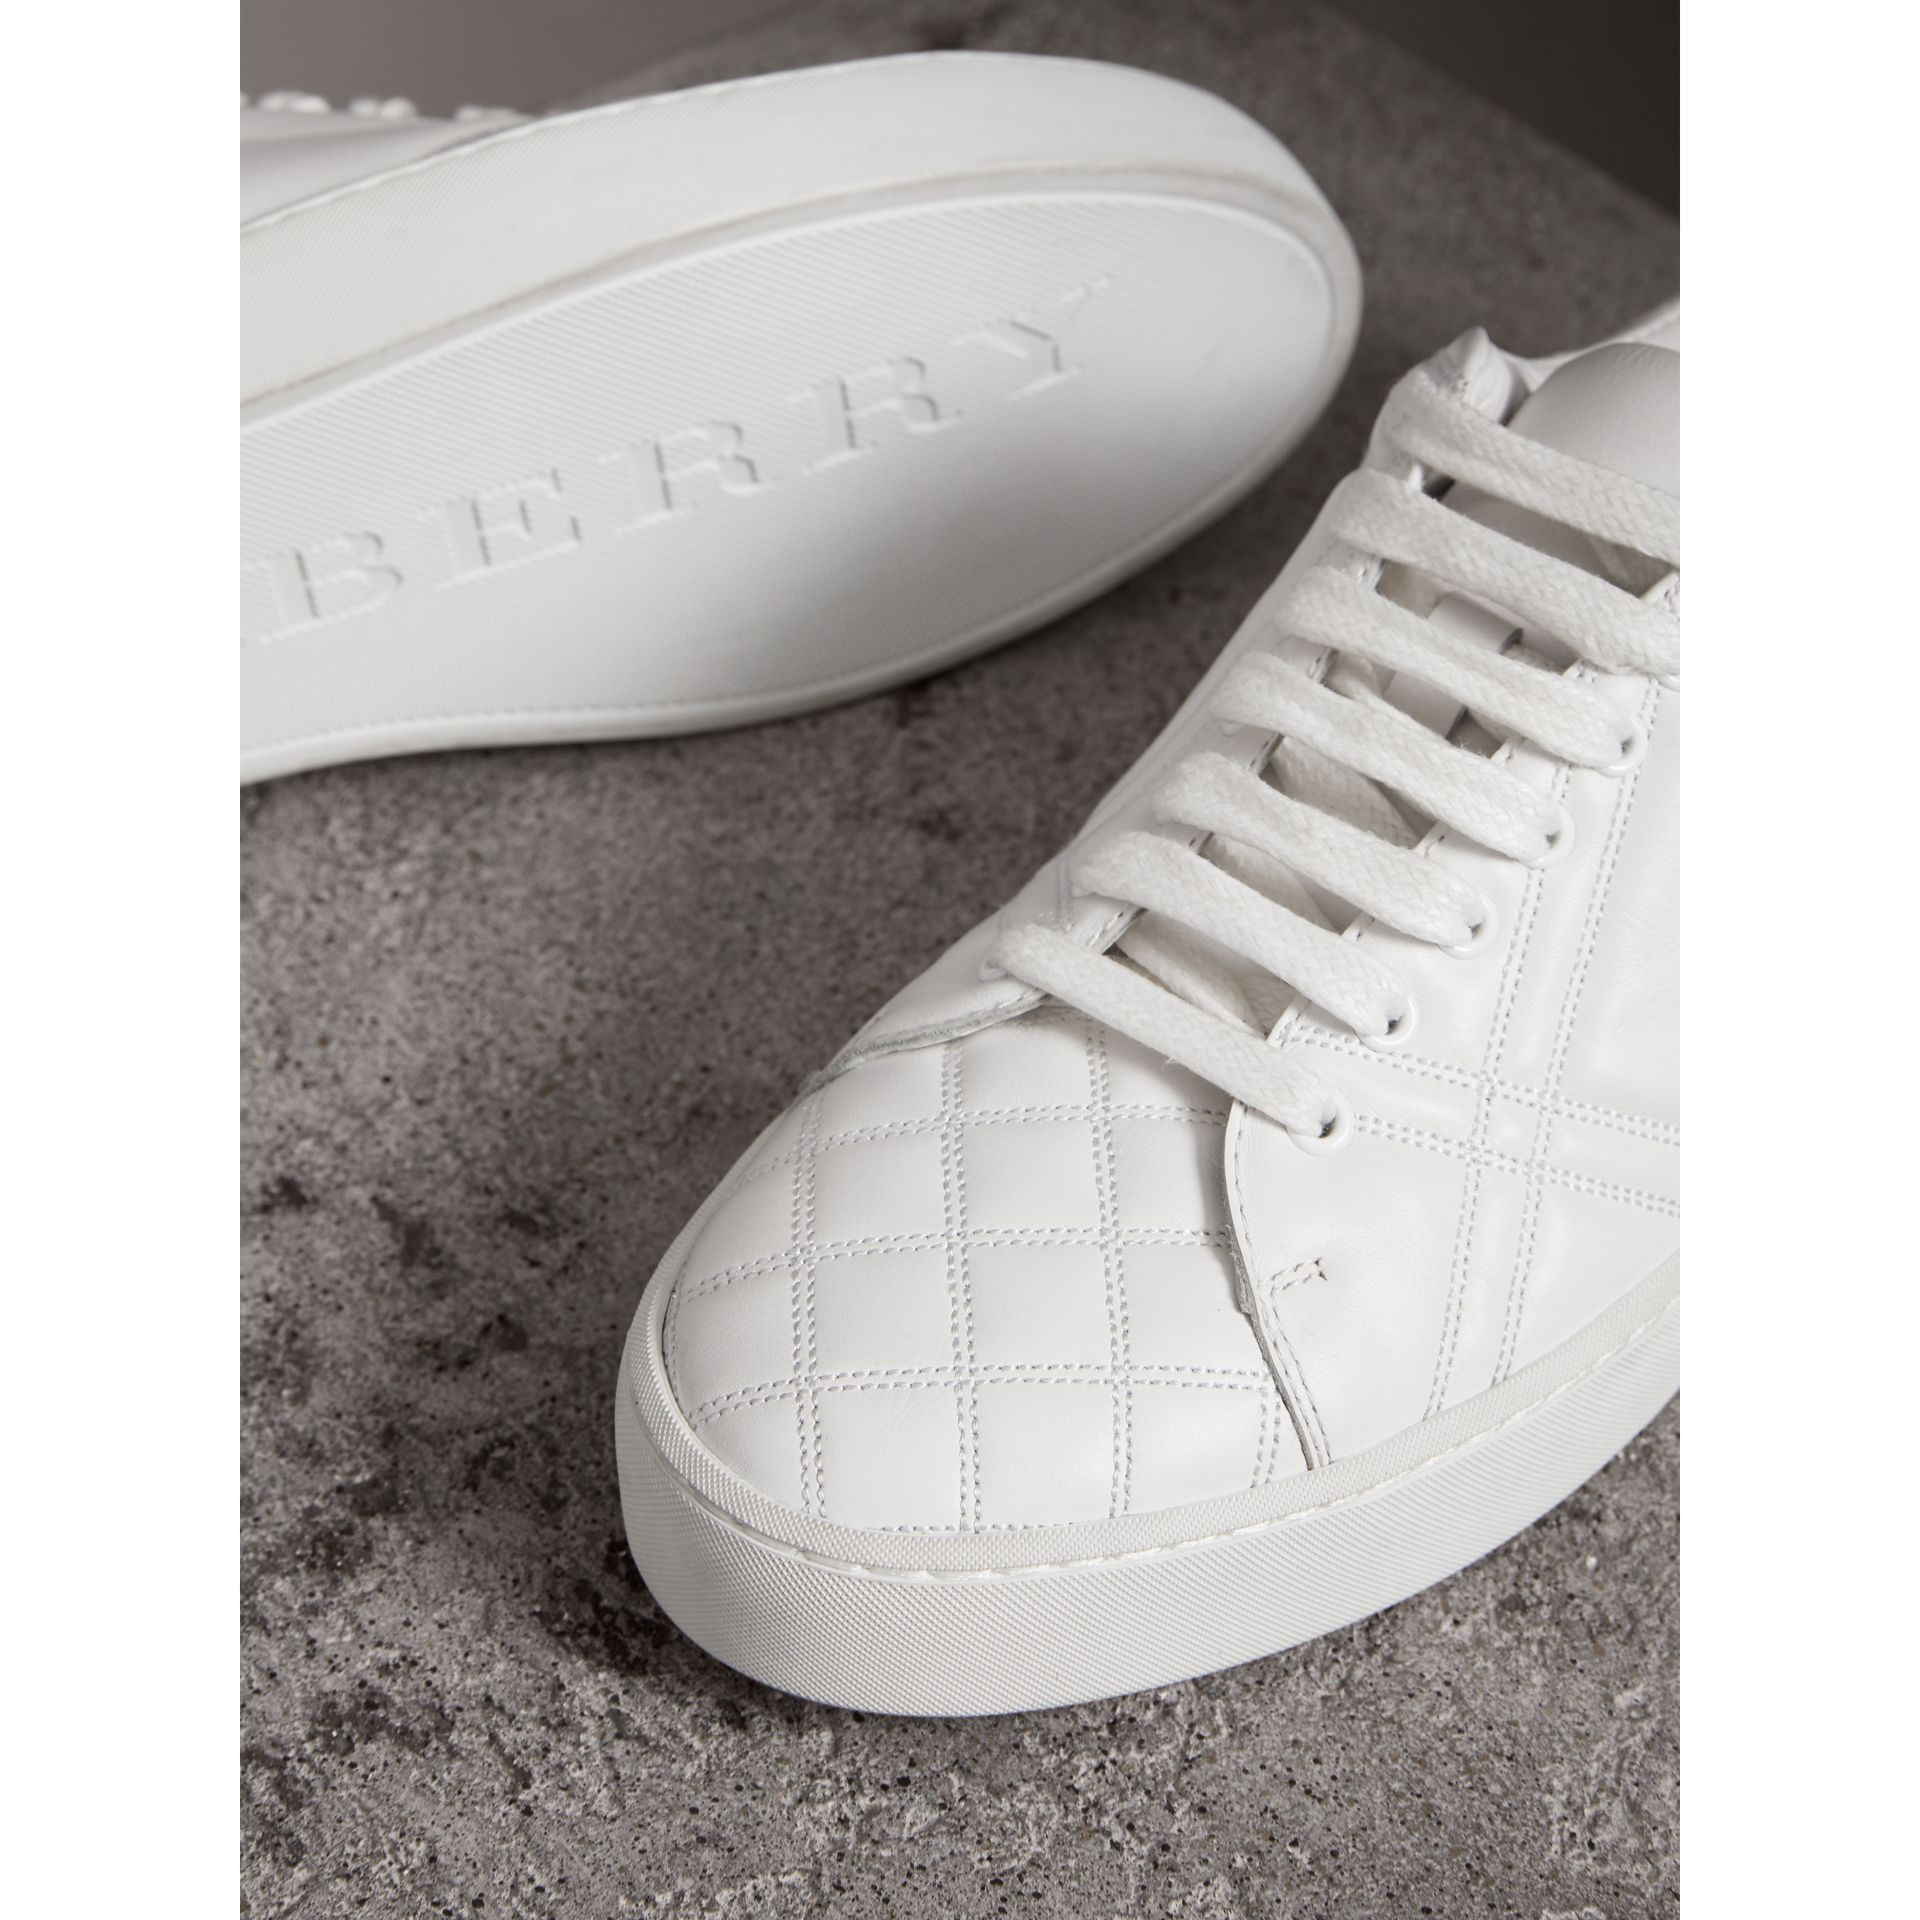 Sneakers en cuir avec matelassage à motif check (Blanc Optique) - Femme | Burberry - photo de la galerie 1